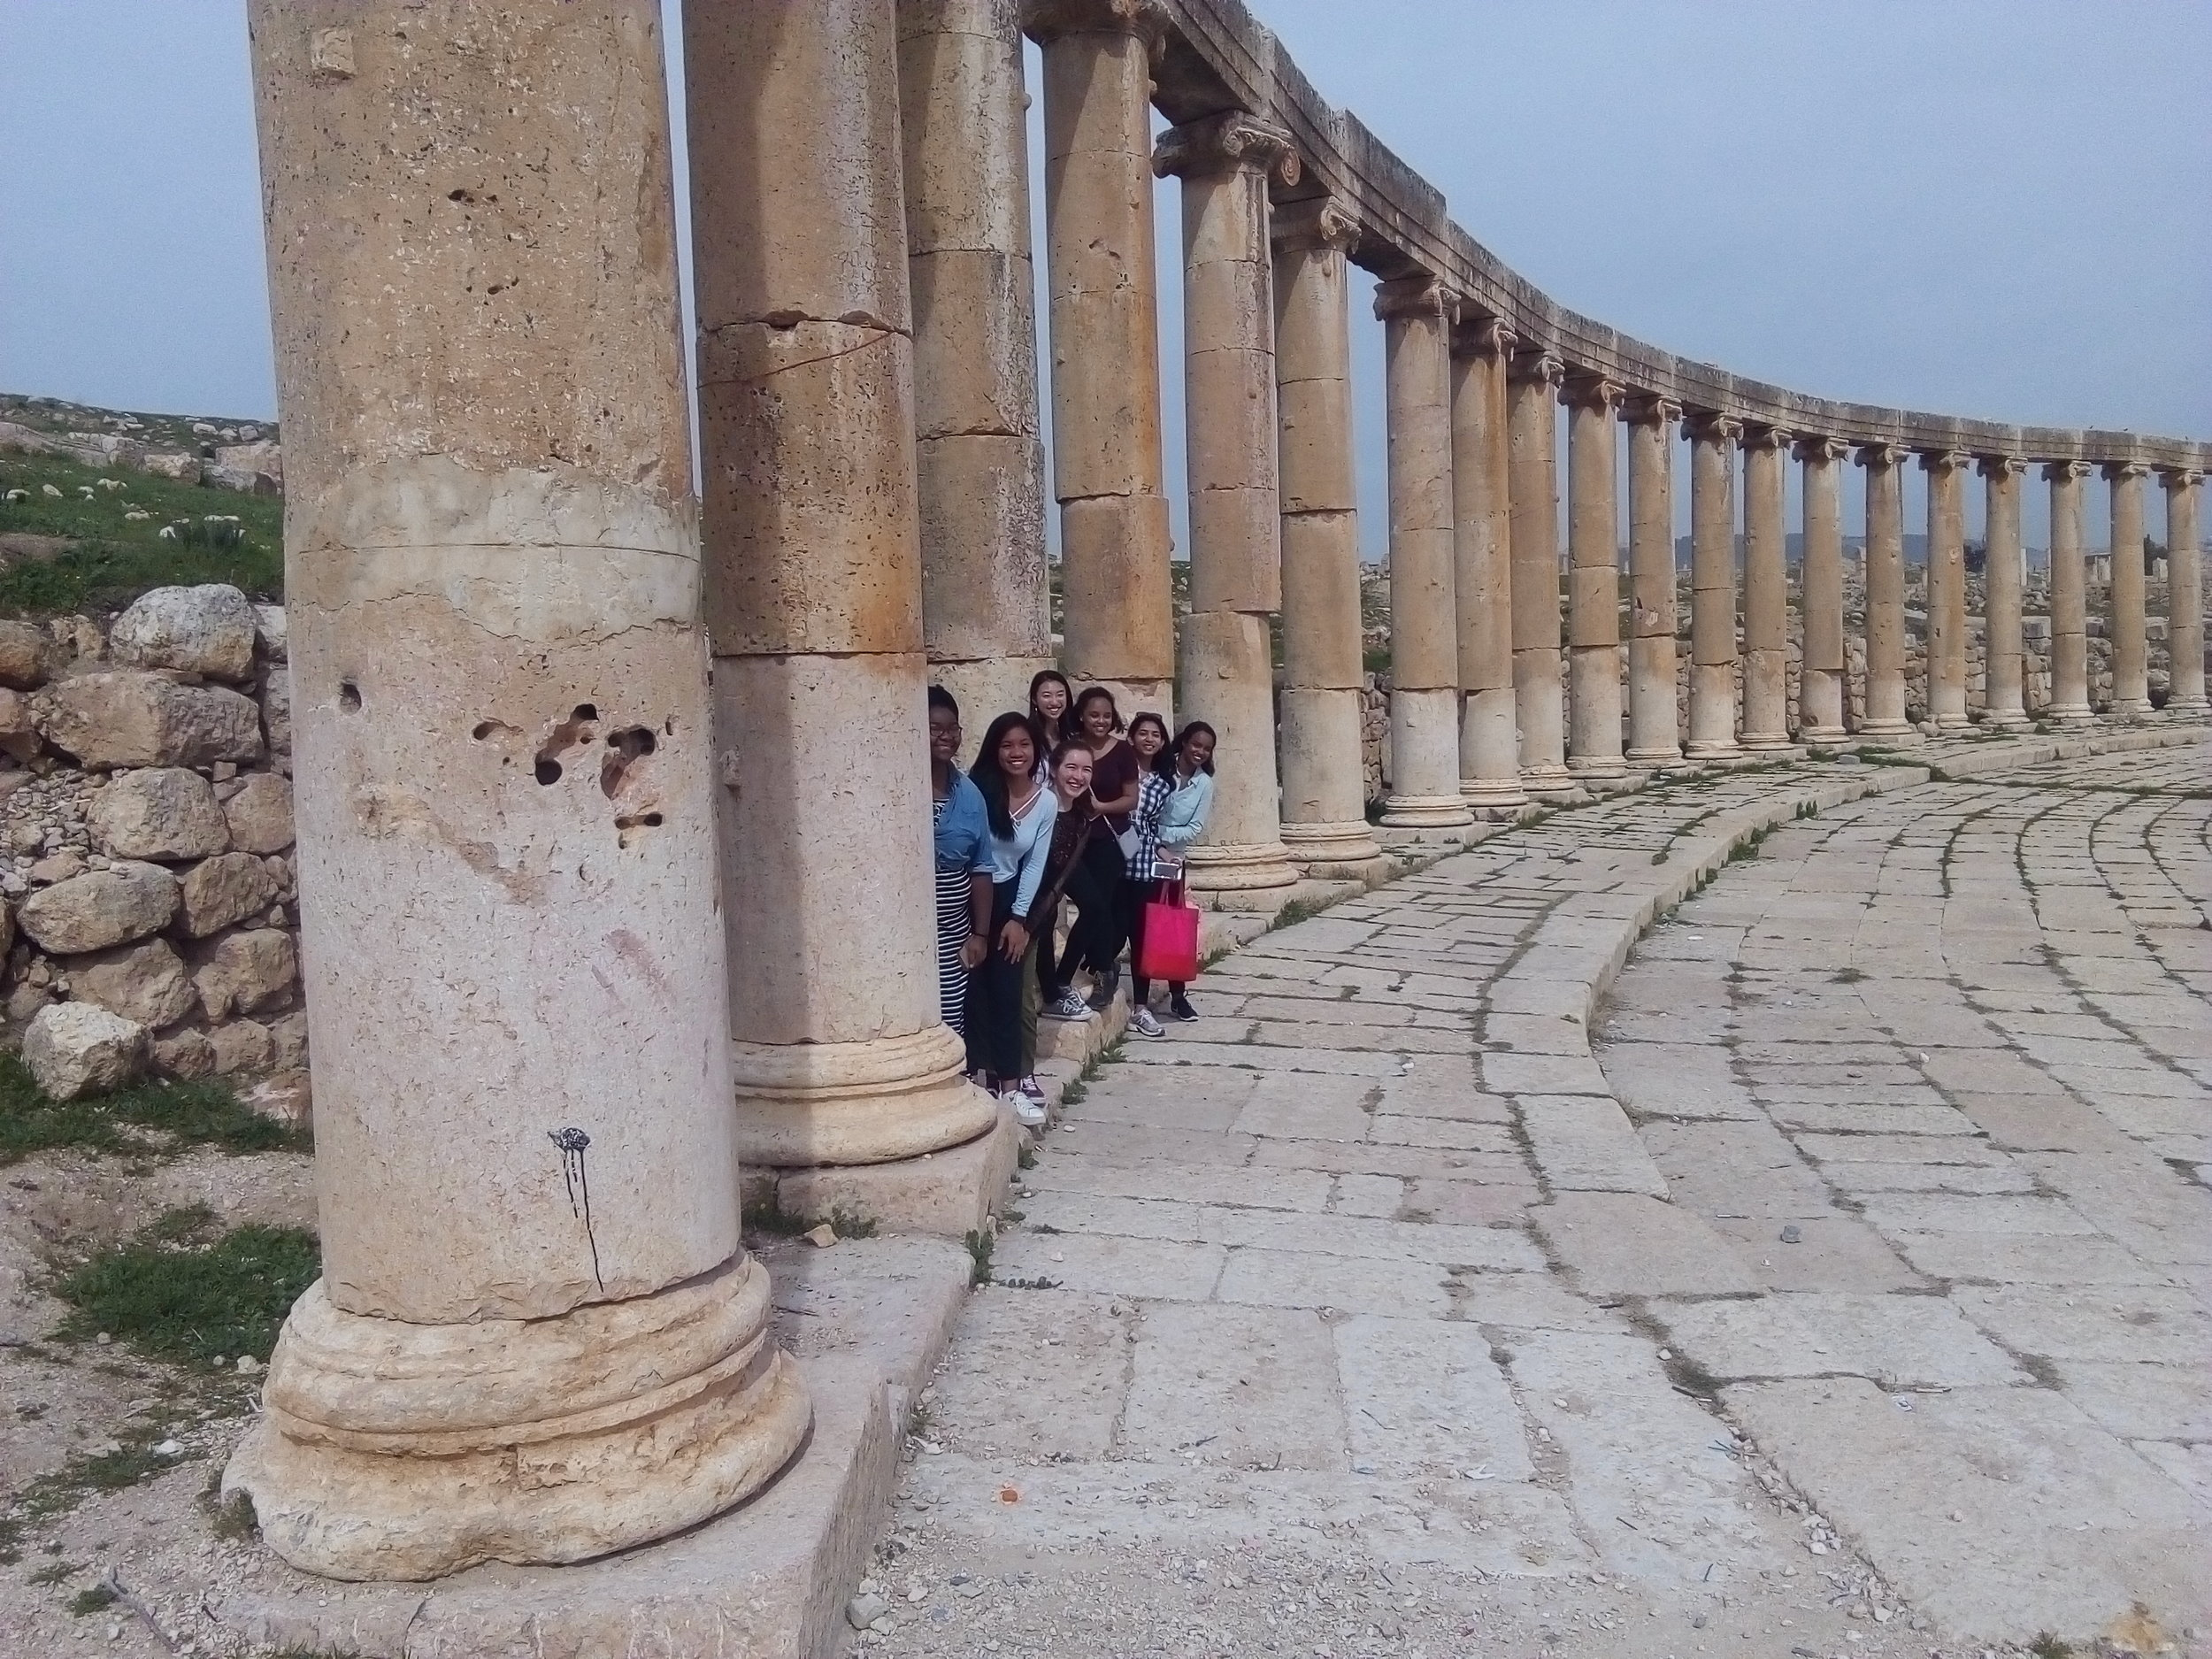 Spring 2018 students pose in the ruins of the Temple of Zeus at Jerash, one of the Roman Decapolis cities, during their Northern Excursion.